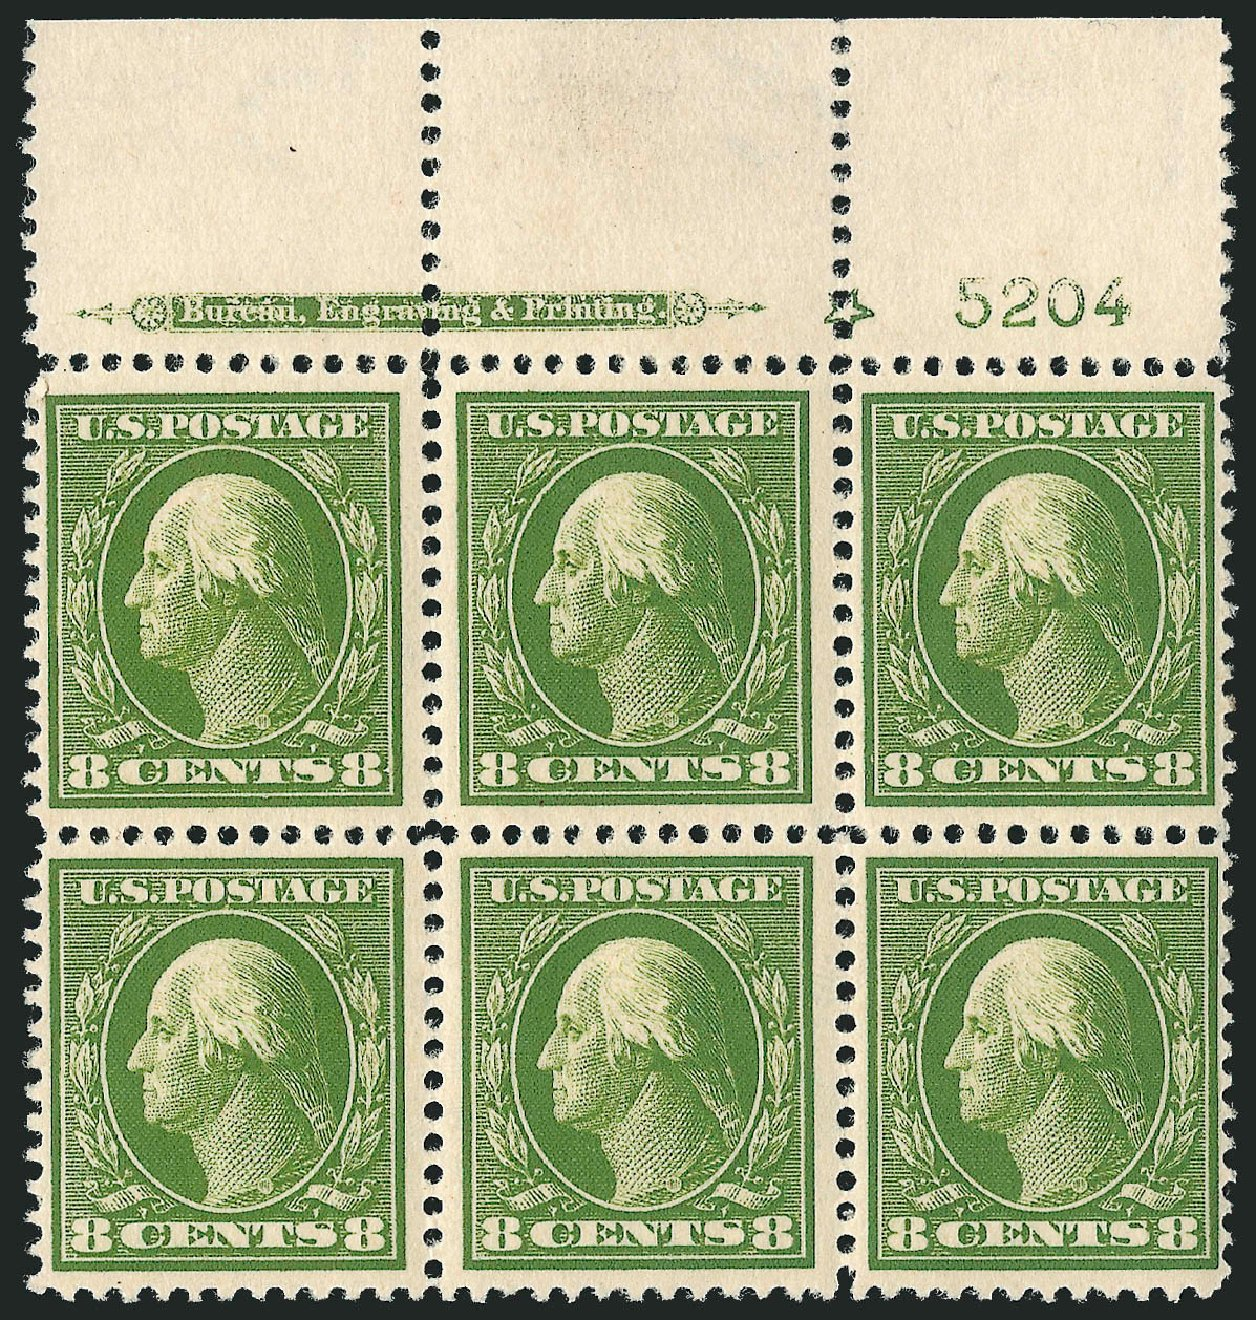 Costs of US Stamps Scott Catalogue 380: 8c 1911 Washington Perf 12. Robert Siegel Auction Galleries, Apr 2015, Sale 1096, Lot 623